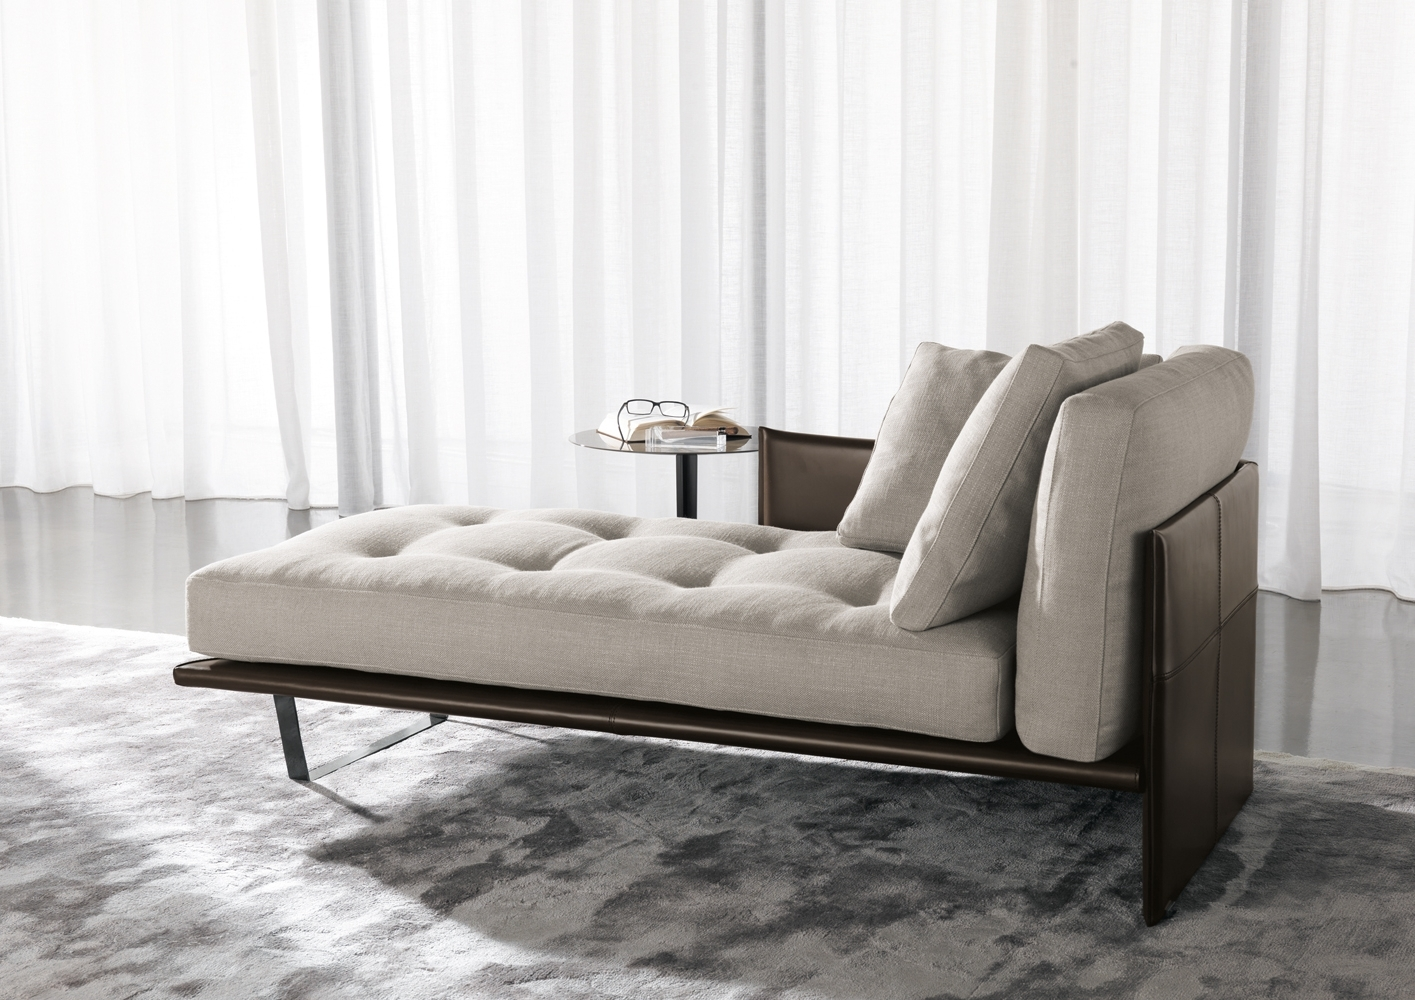 Switch Modern With Chaise Lounge Daybeds (View 11 of 15)